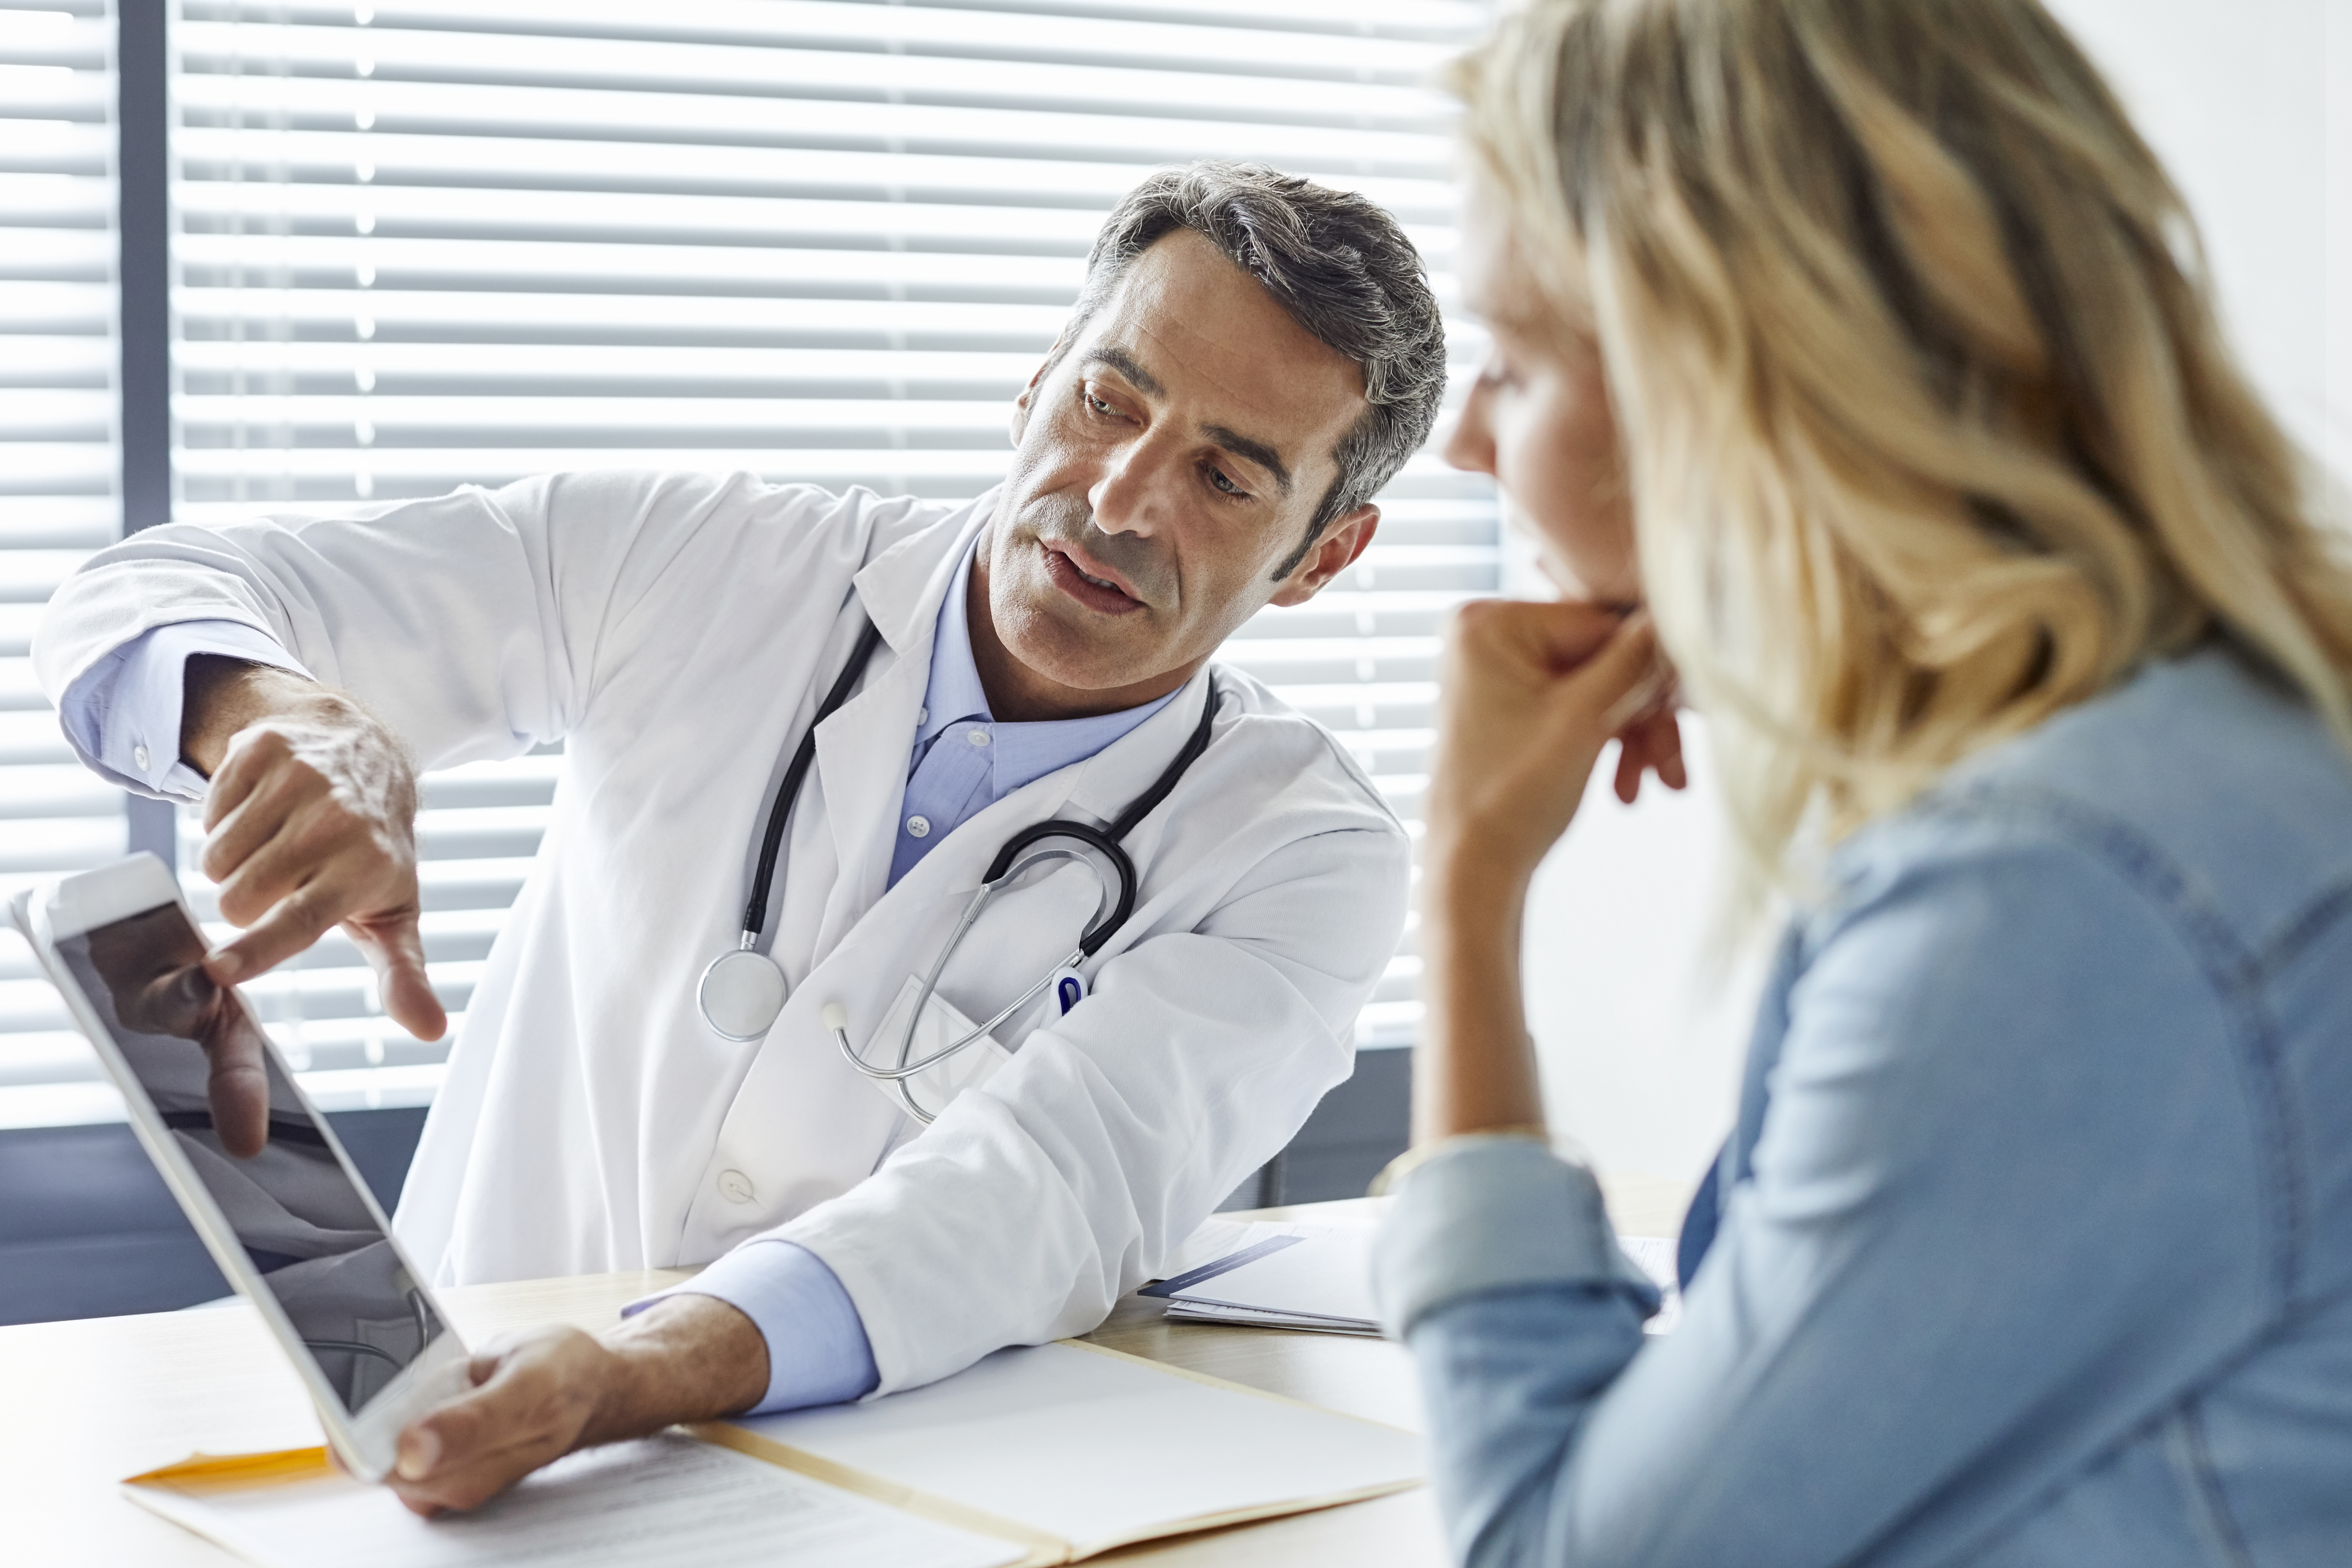 Should an Employer Ask for a Doctor's Note if You Call in